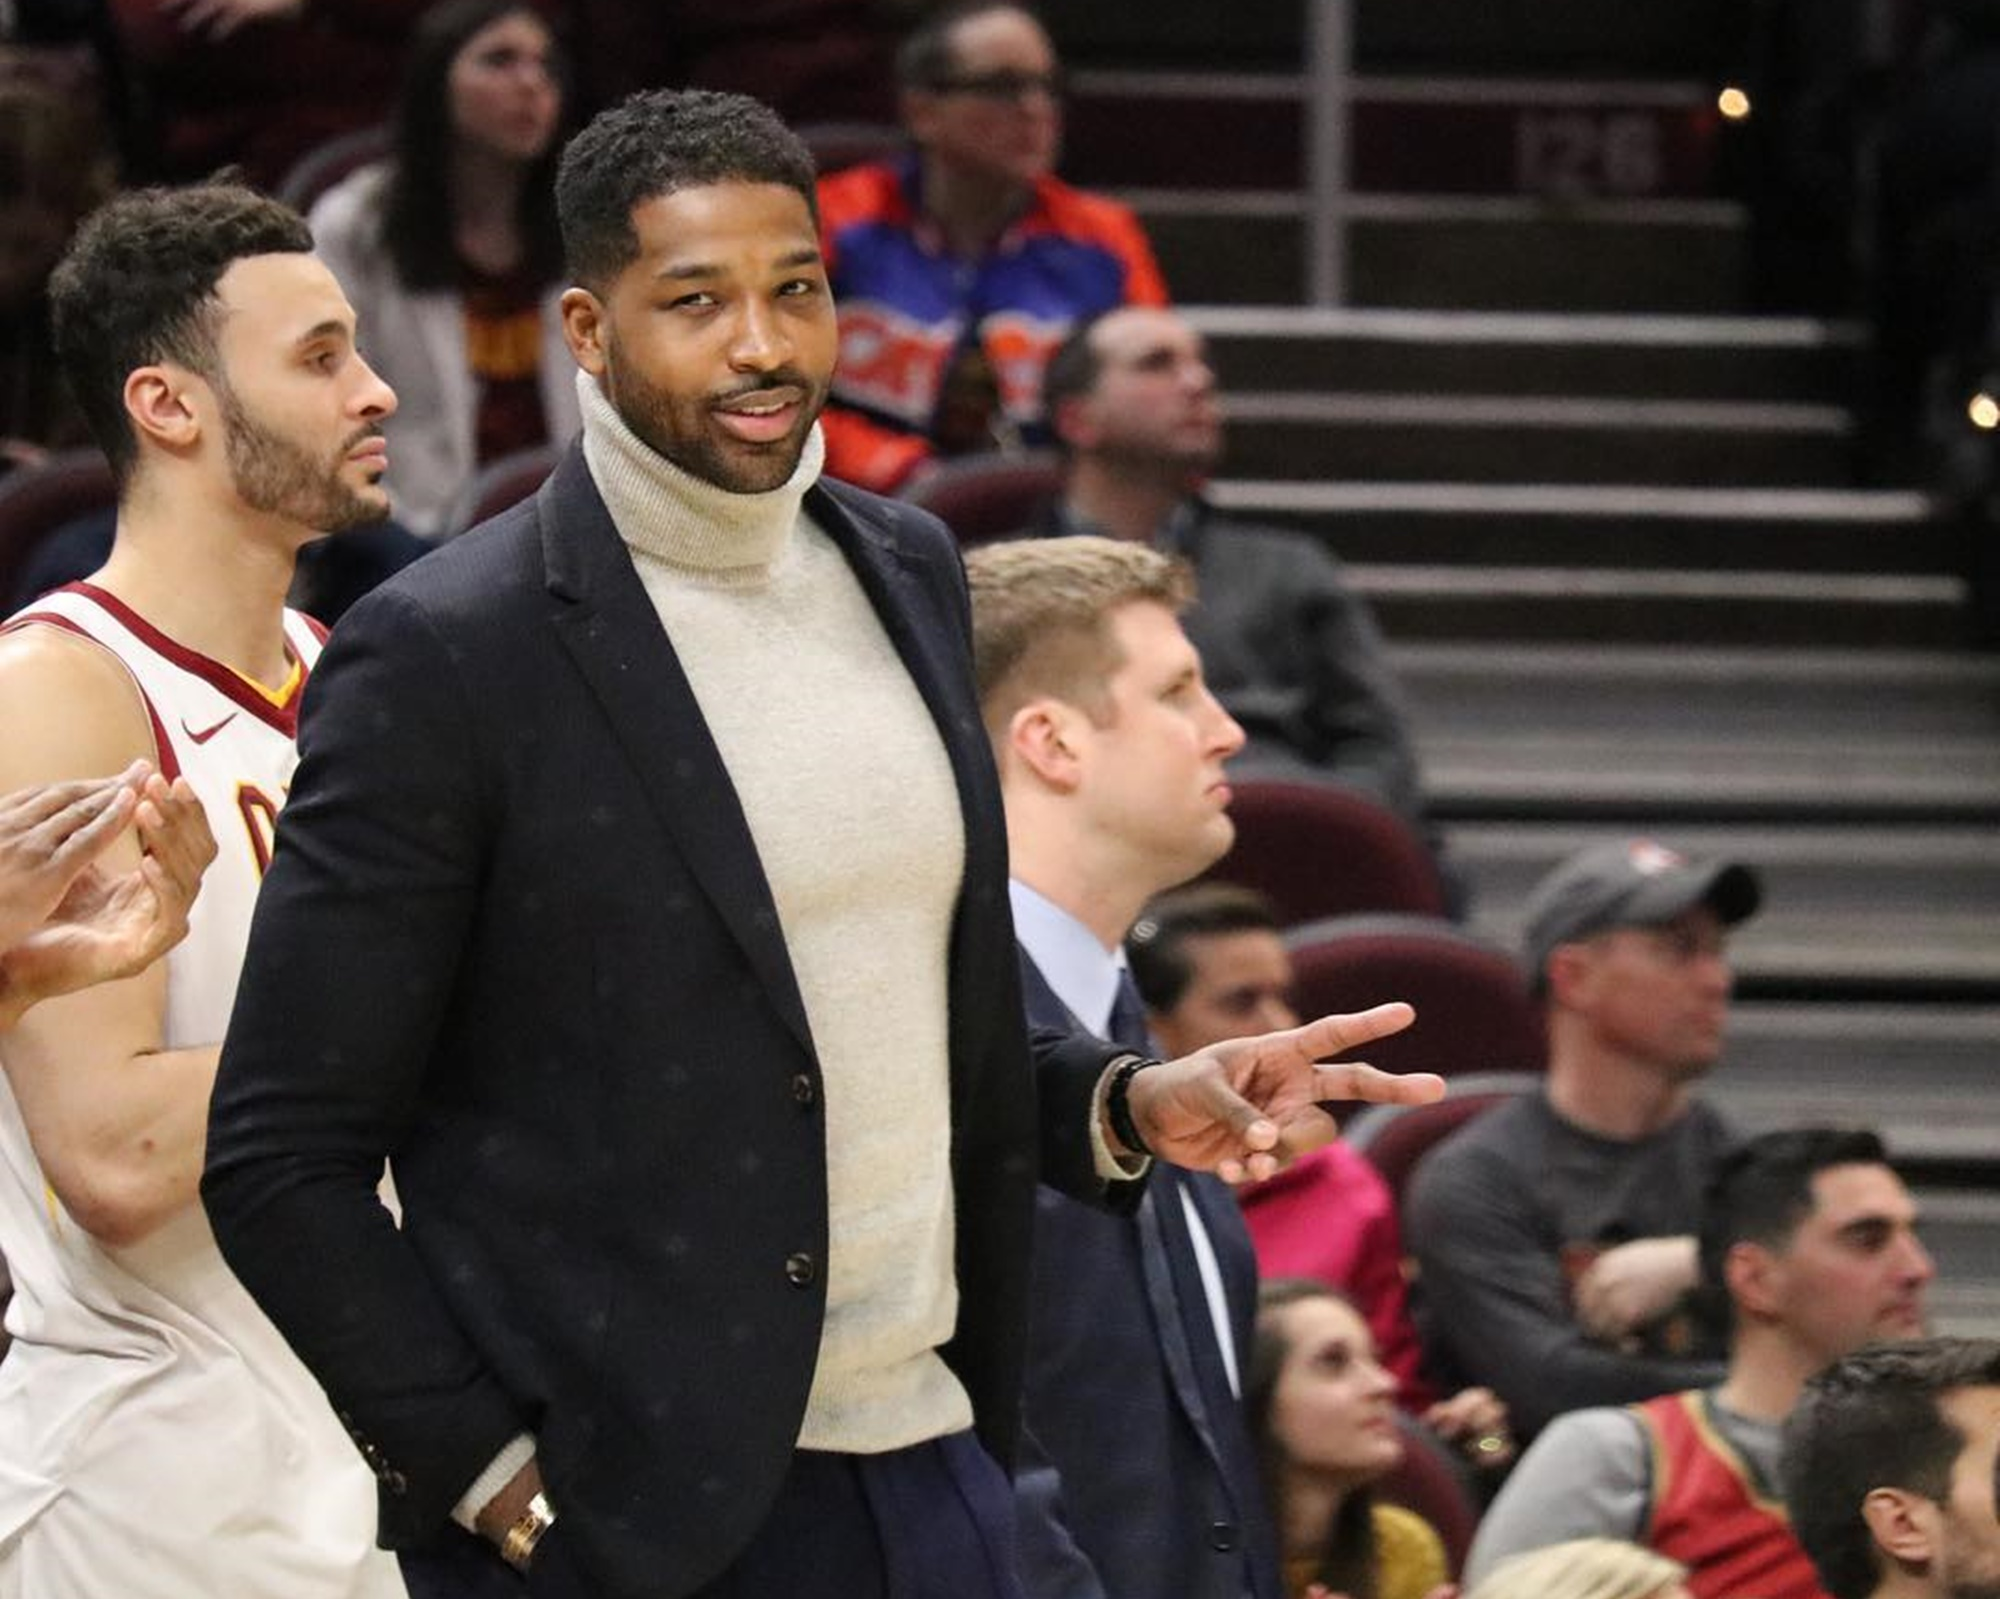 tristan-thompson-spotted-with-khloe-kardashian-at-first-birthday-party-of-true-is-this-video-the-beginning-of-a-new-era